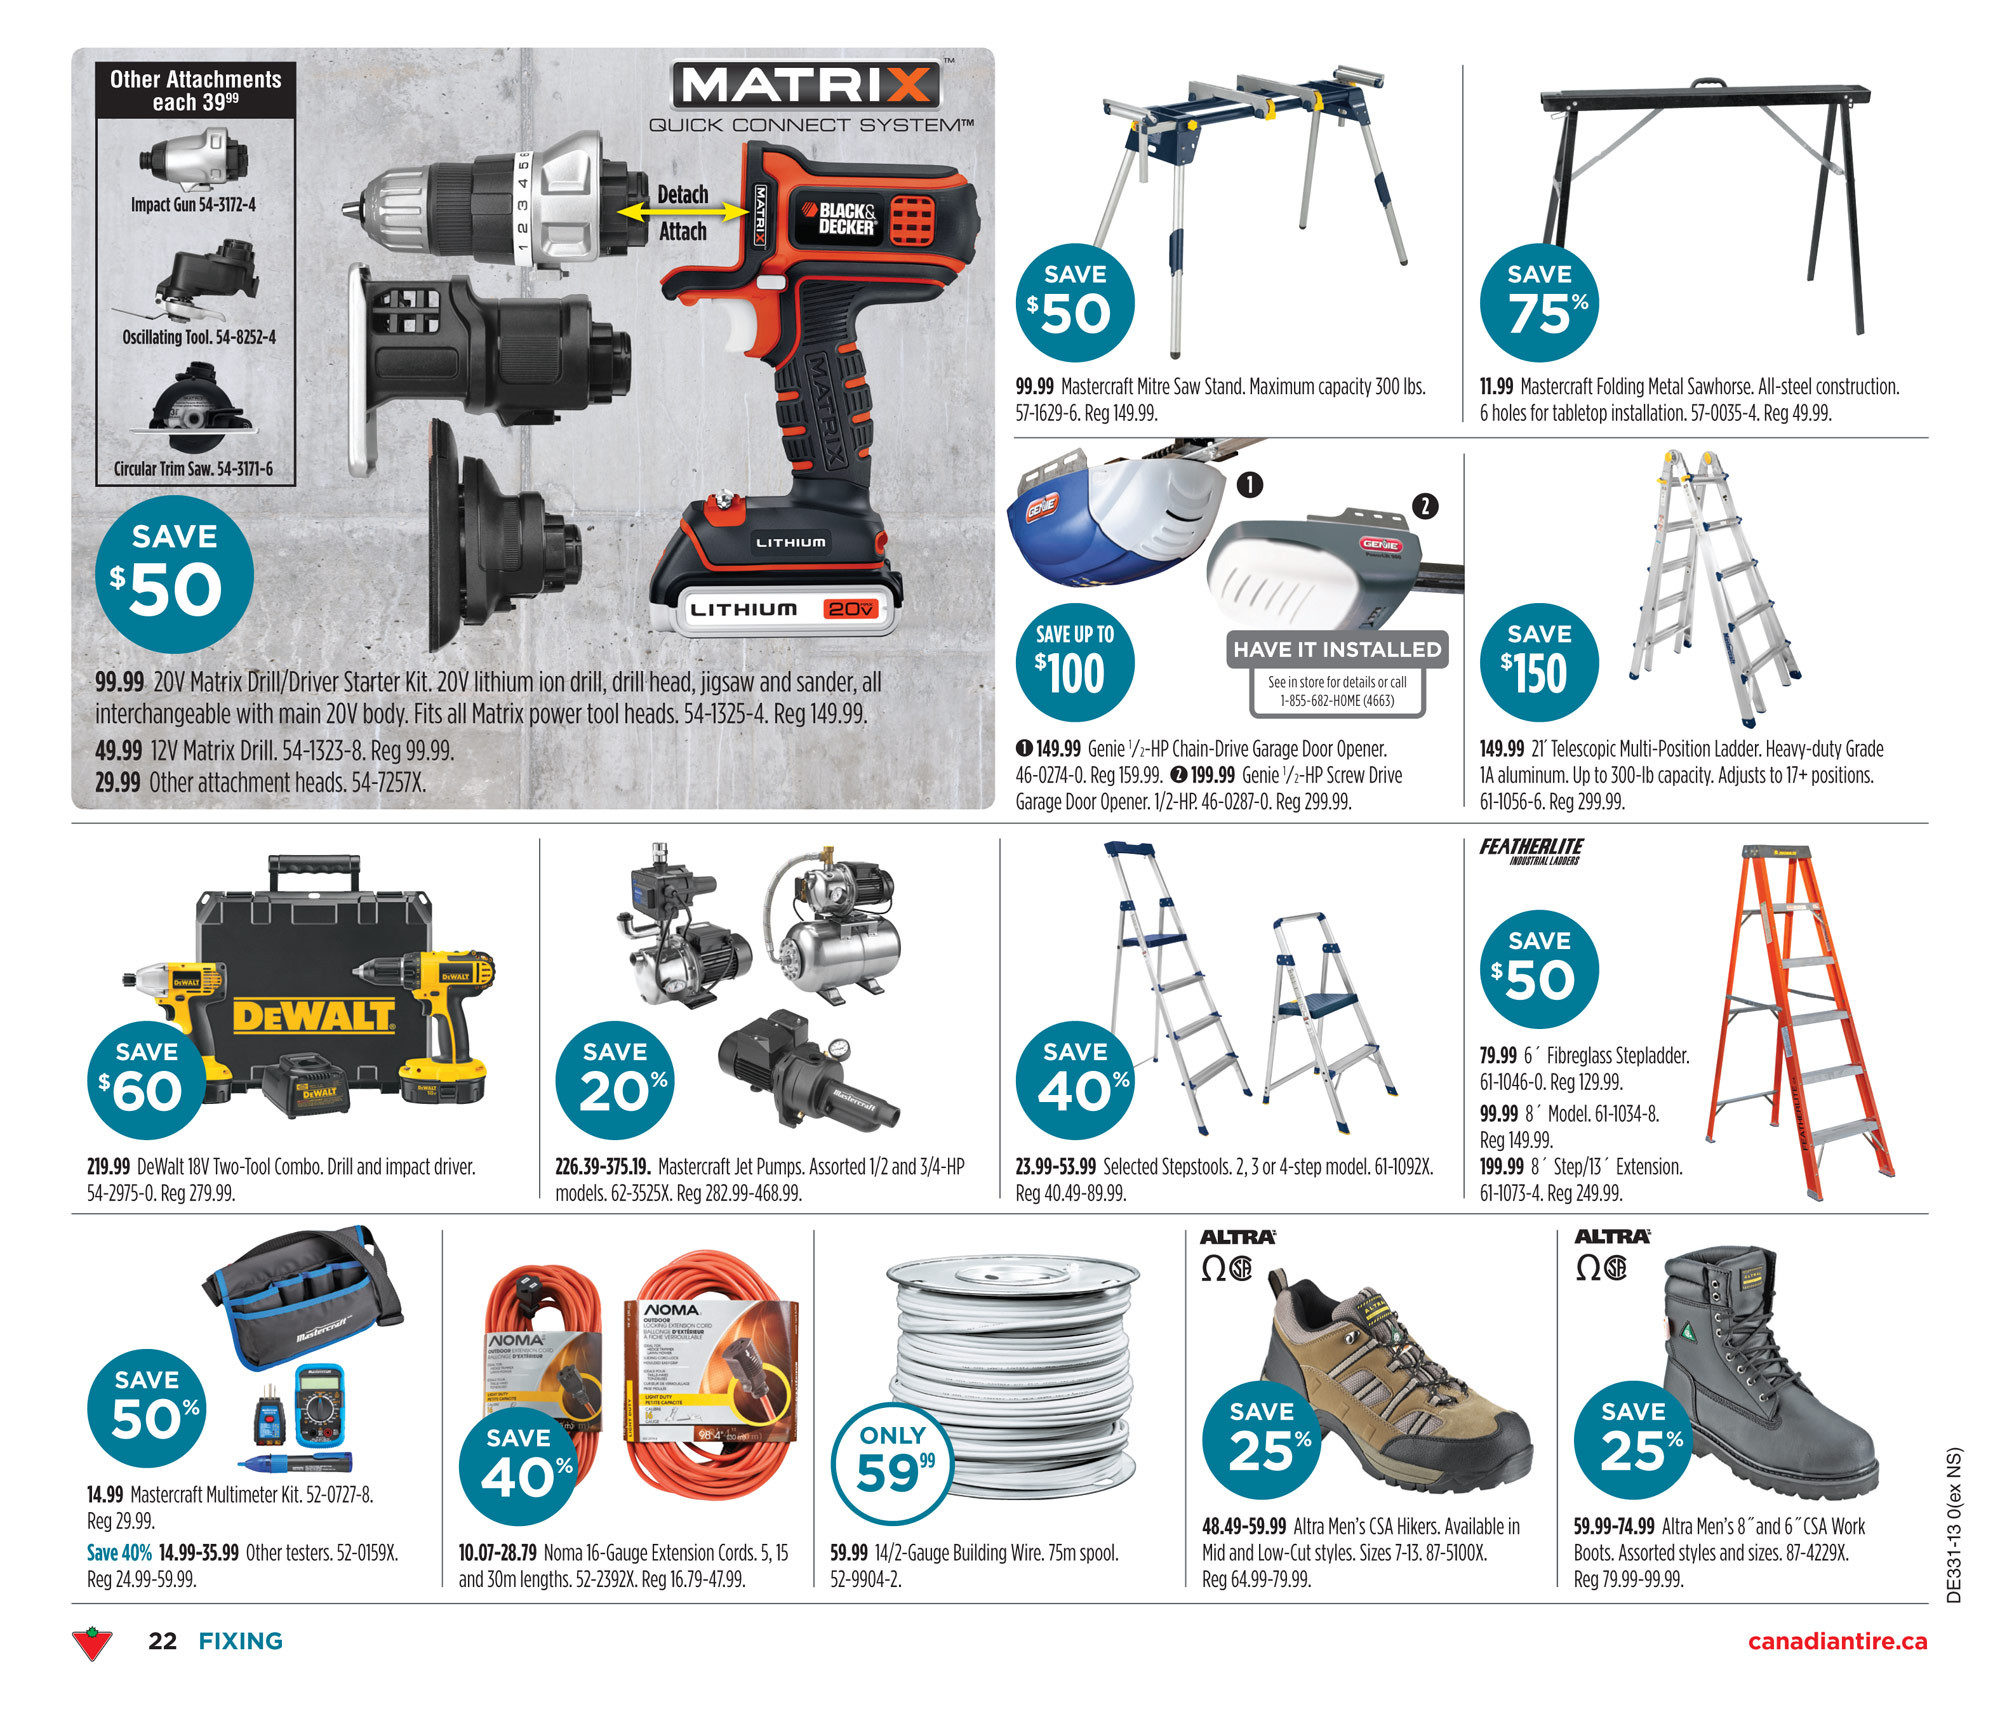 Mastercraft Seat Heater Wiring Diagram Canadian Tire Weekly Flyer Jul 25 Aug 1